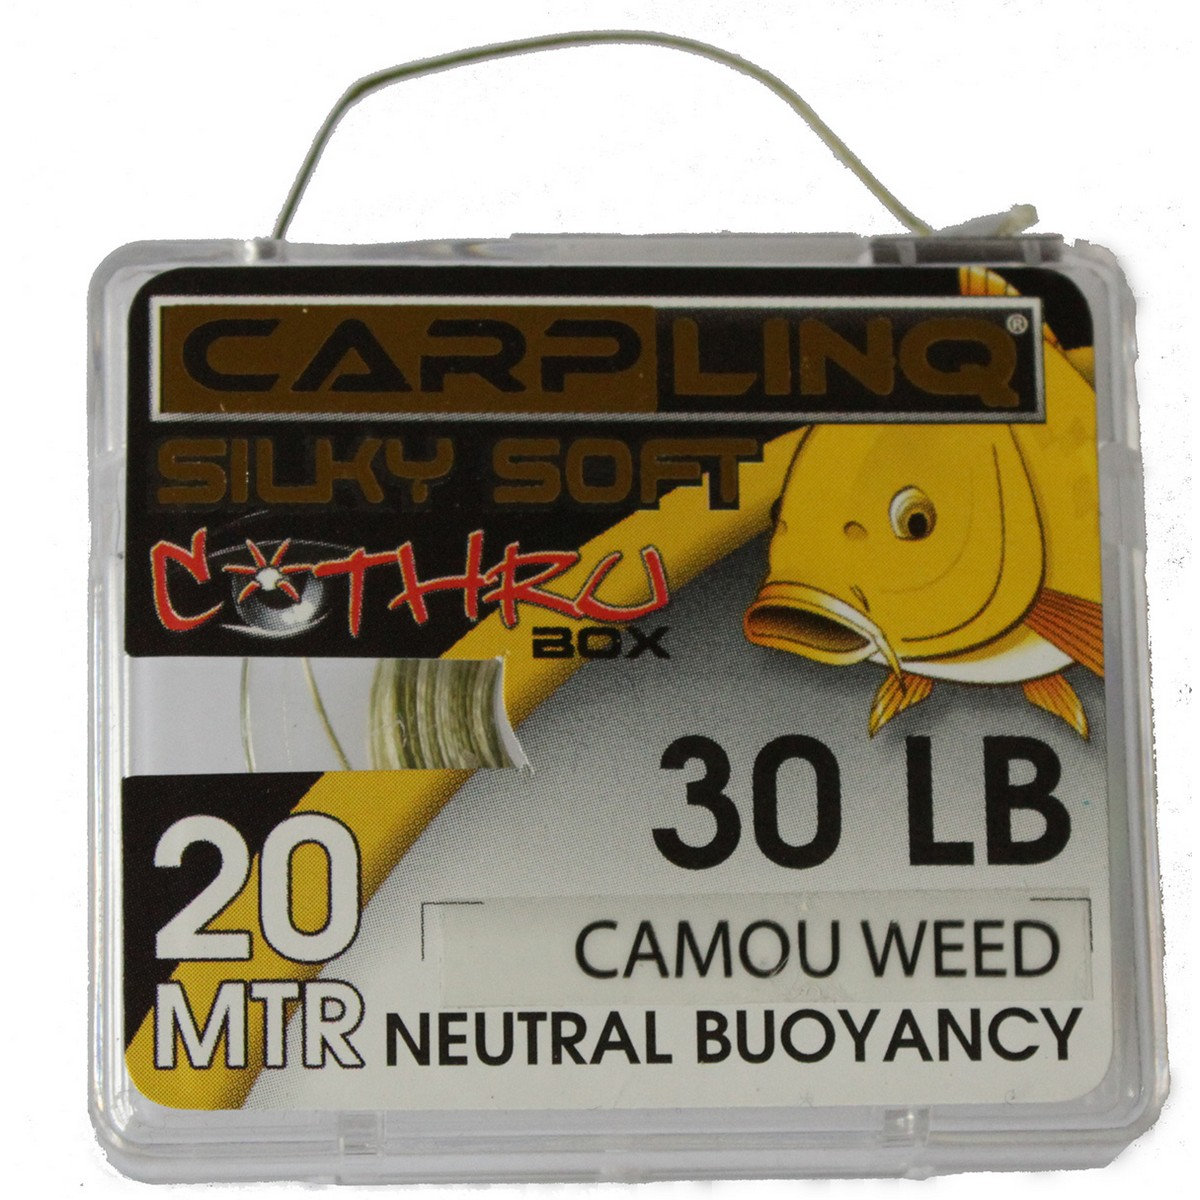 Carp Linq Silky Soft Camou Weed